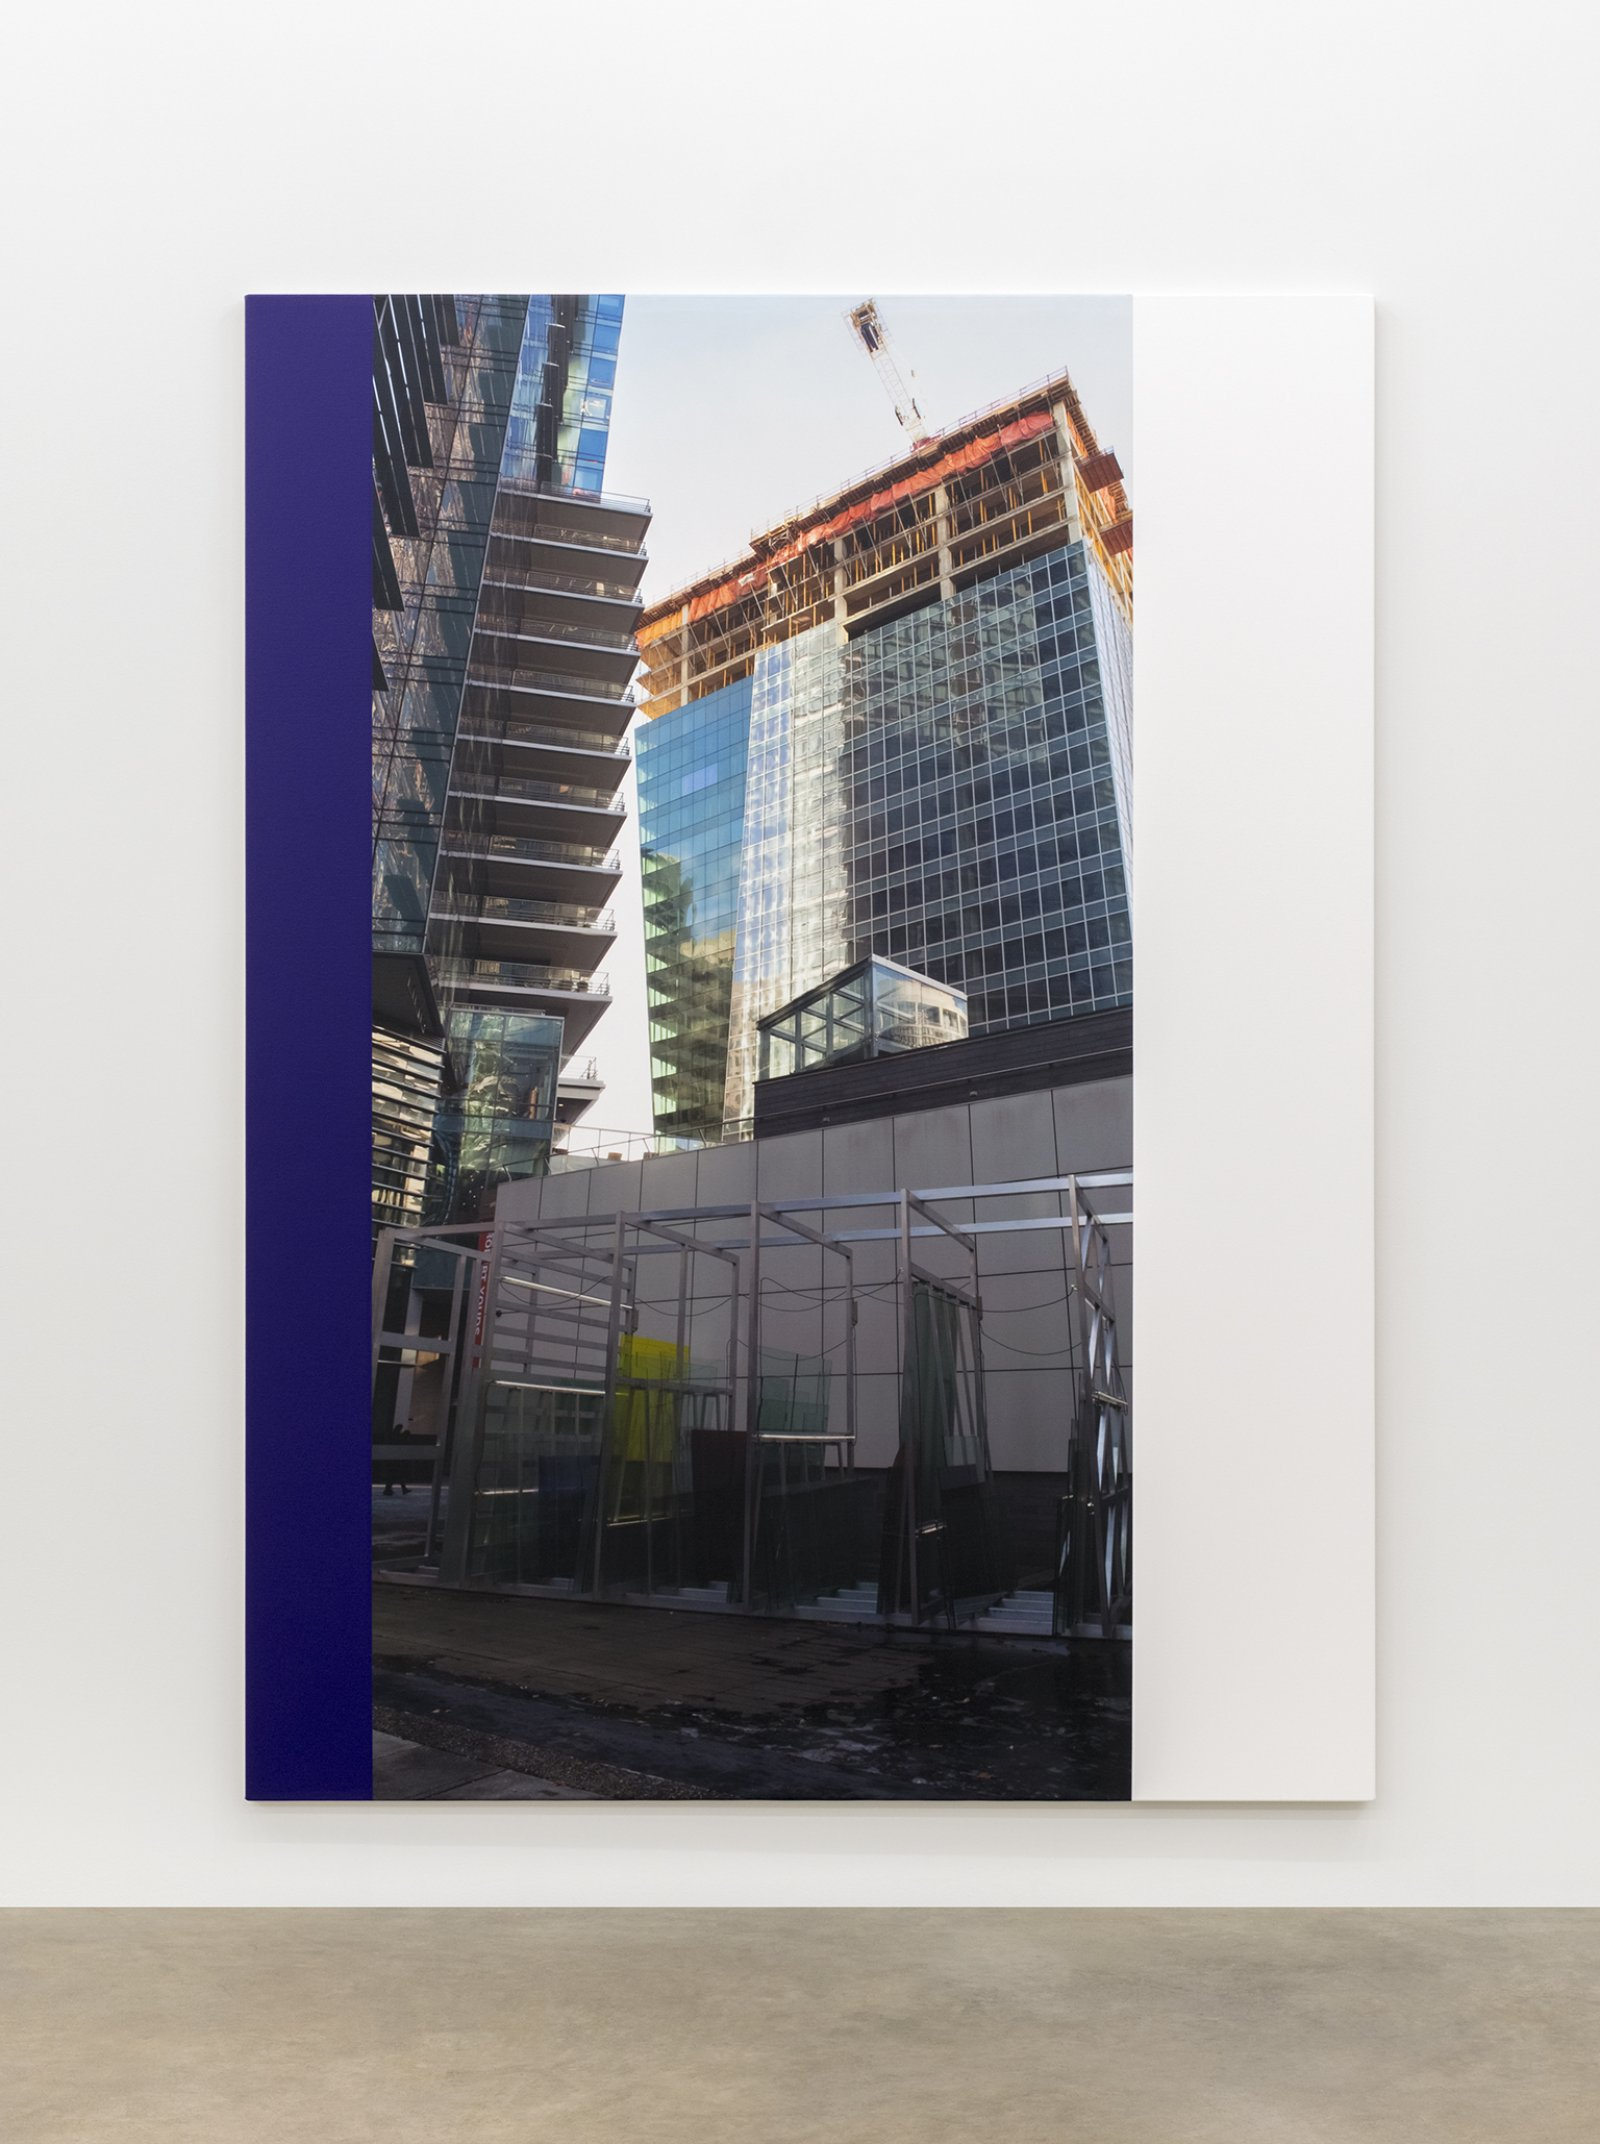 Ian Wallace, Construction Site (Off Site Installation), 2015, photolaminate and acrylic on canvas, 96 x 72 in. (244 x 183 cm) by Ian Wallace